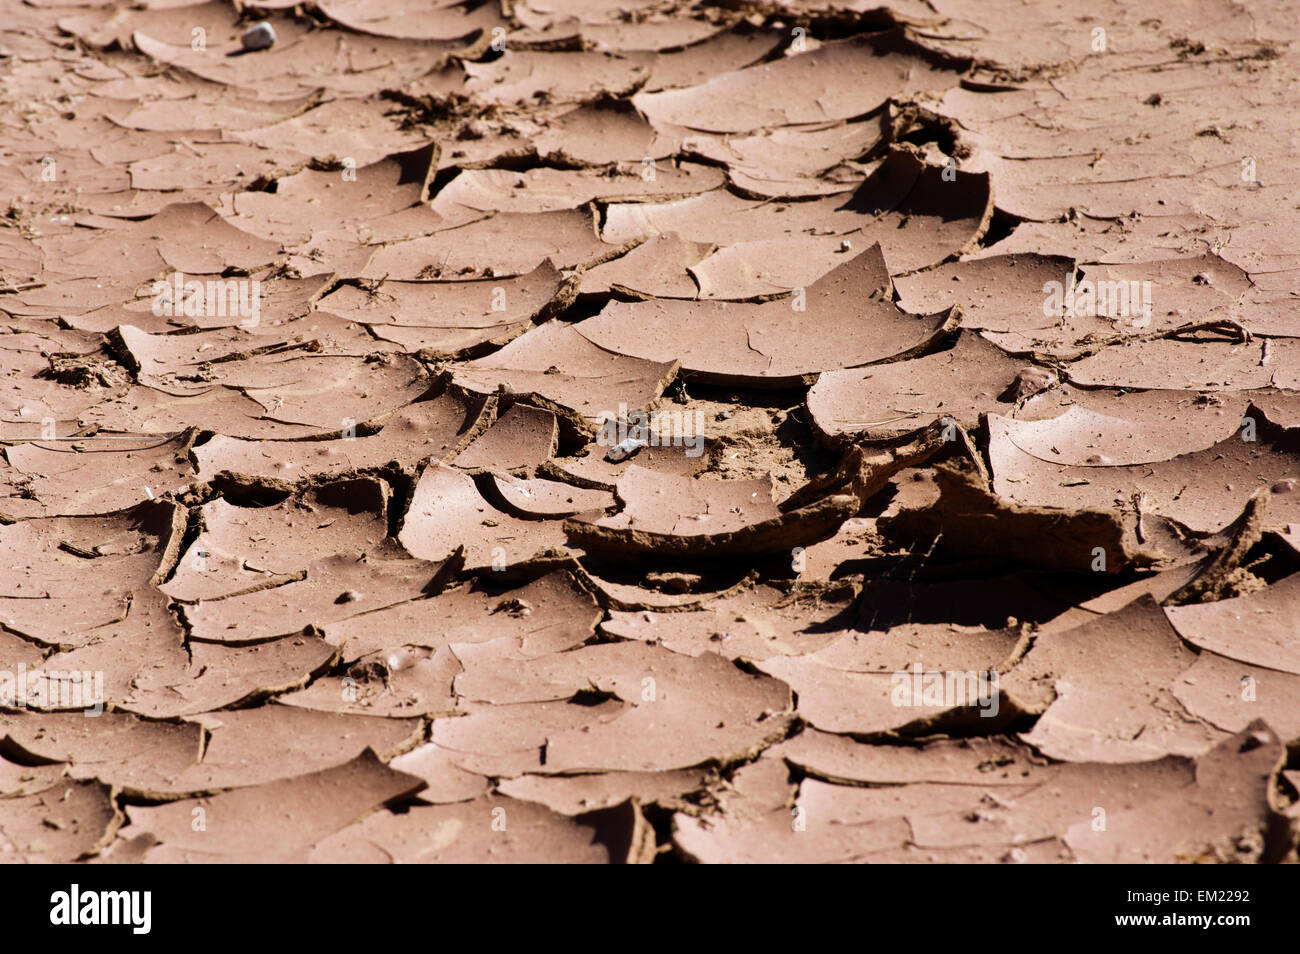 Cracked earth in Southern California from water shortage drought - Stock Image